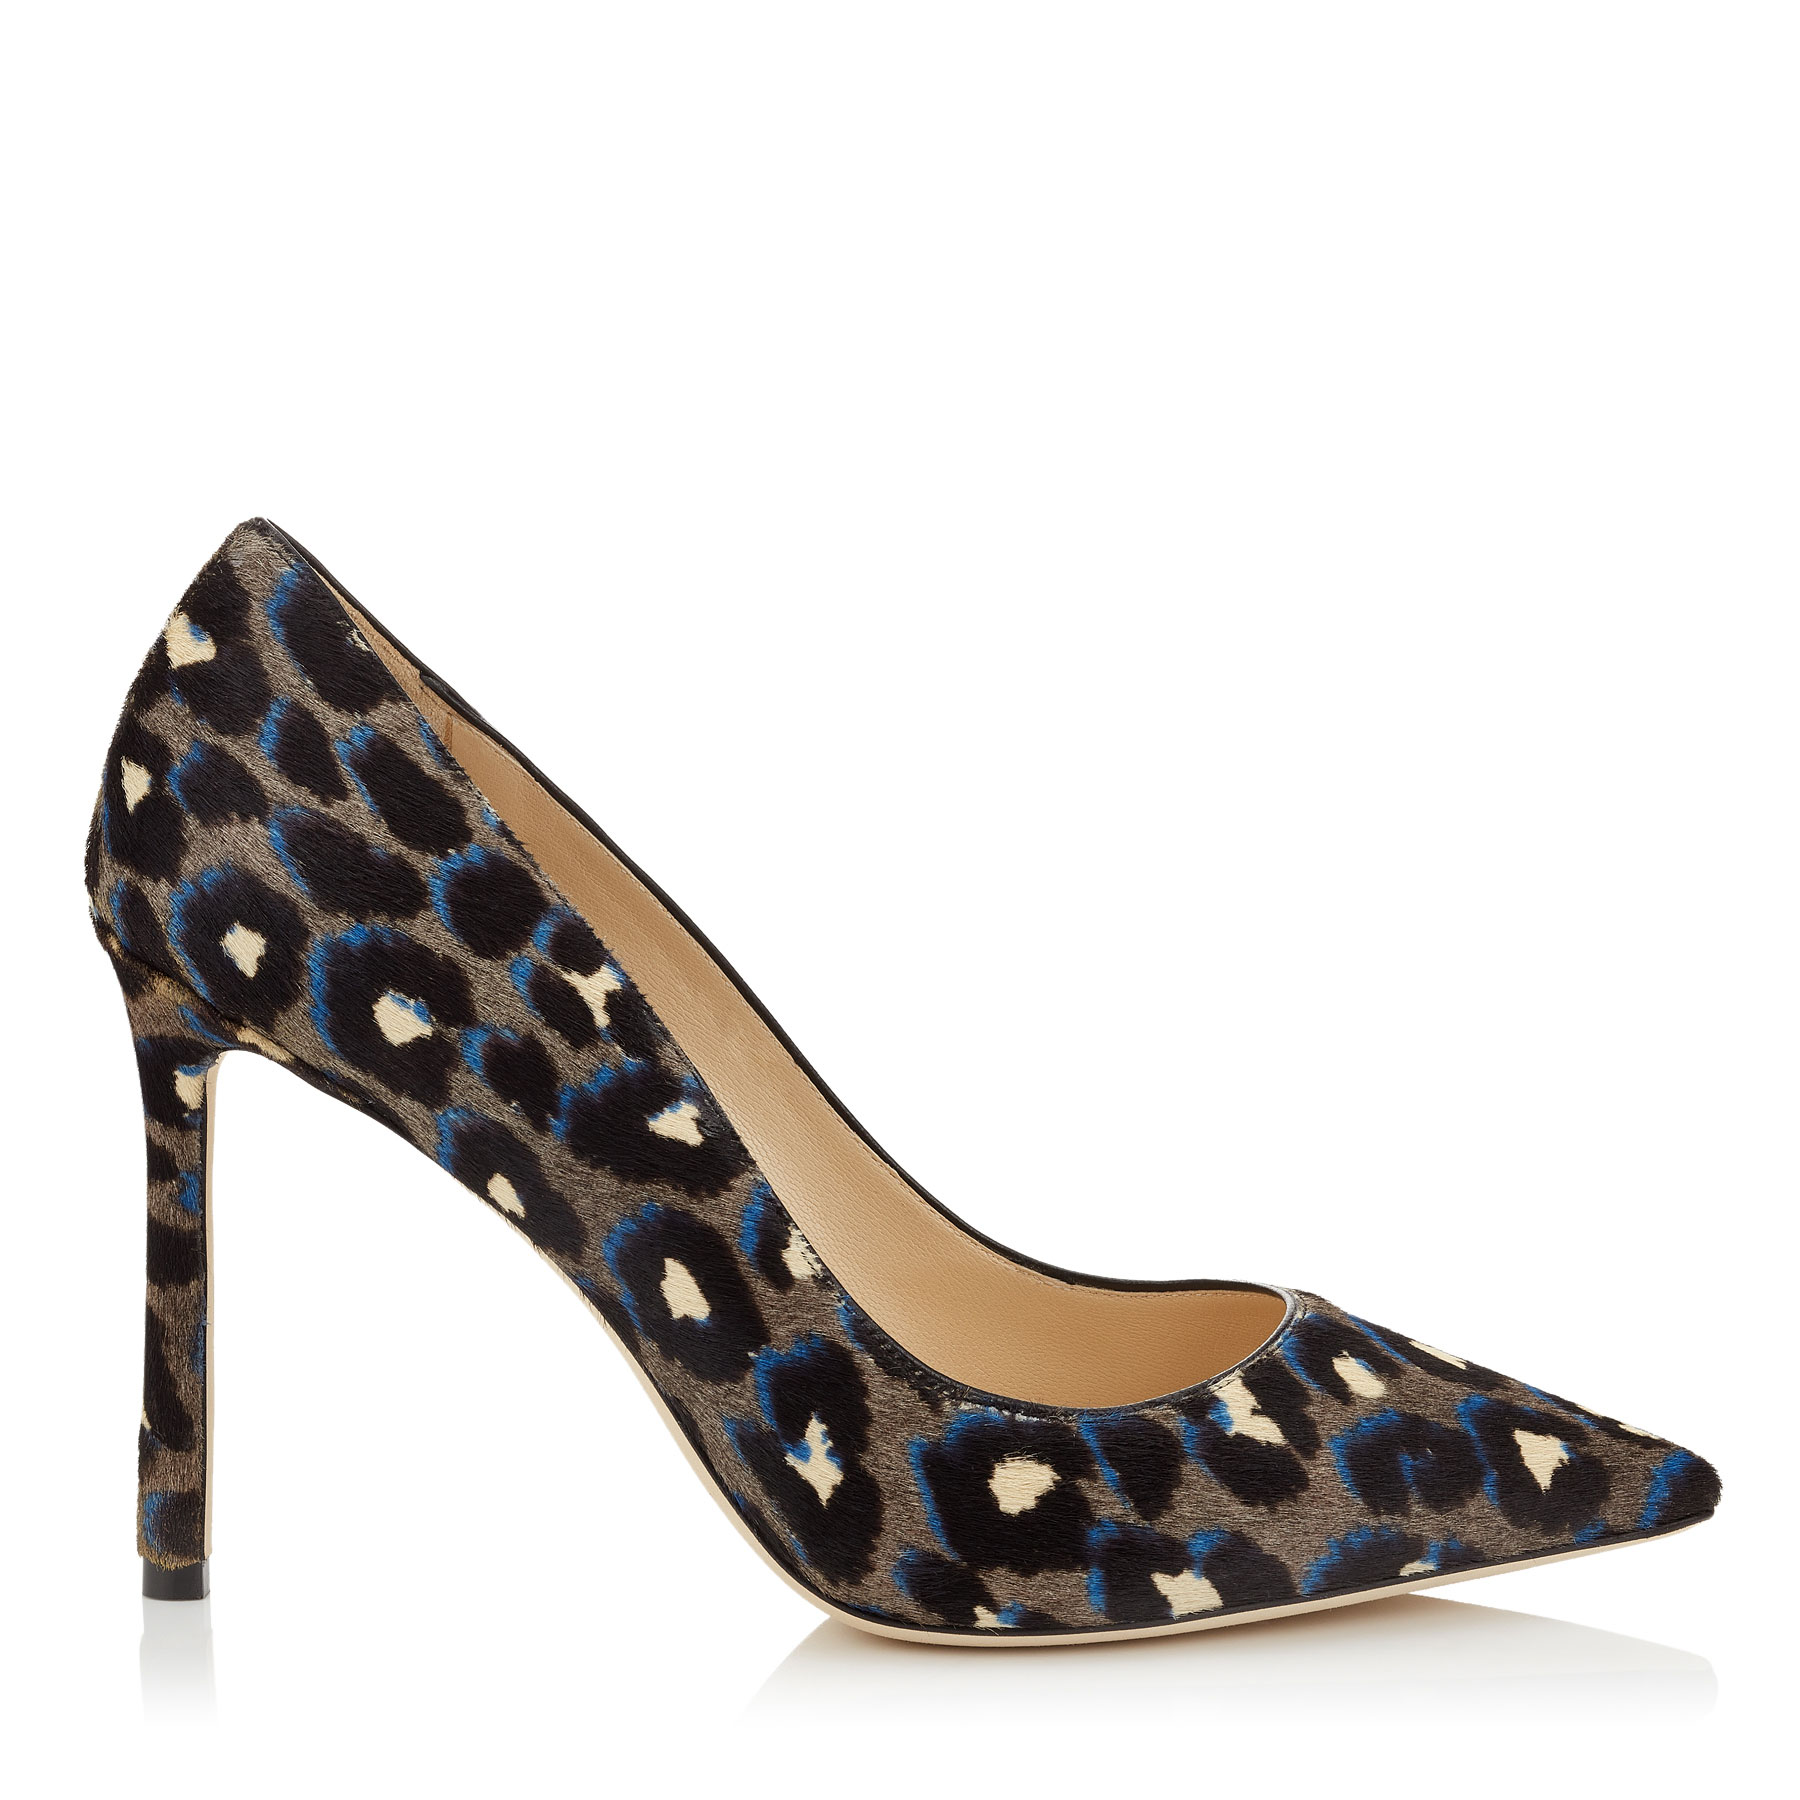 ROMY 100 Pop Blue Mix Leopard Print Pony Pointed Toe Pumps by Jimmy Choo